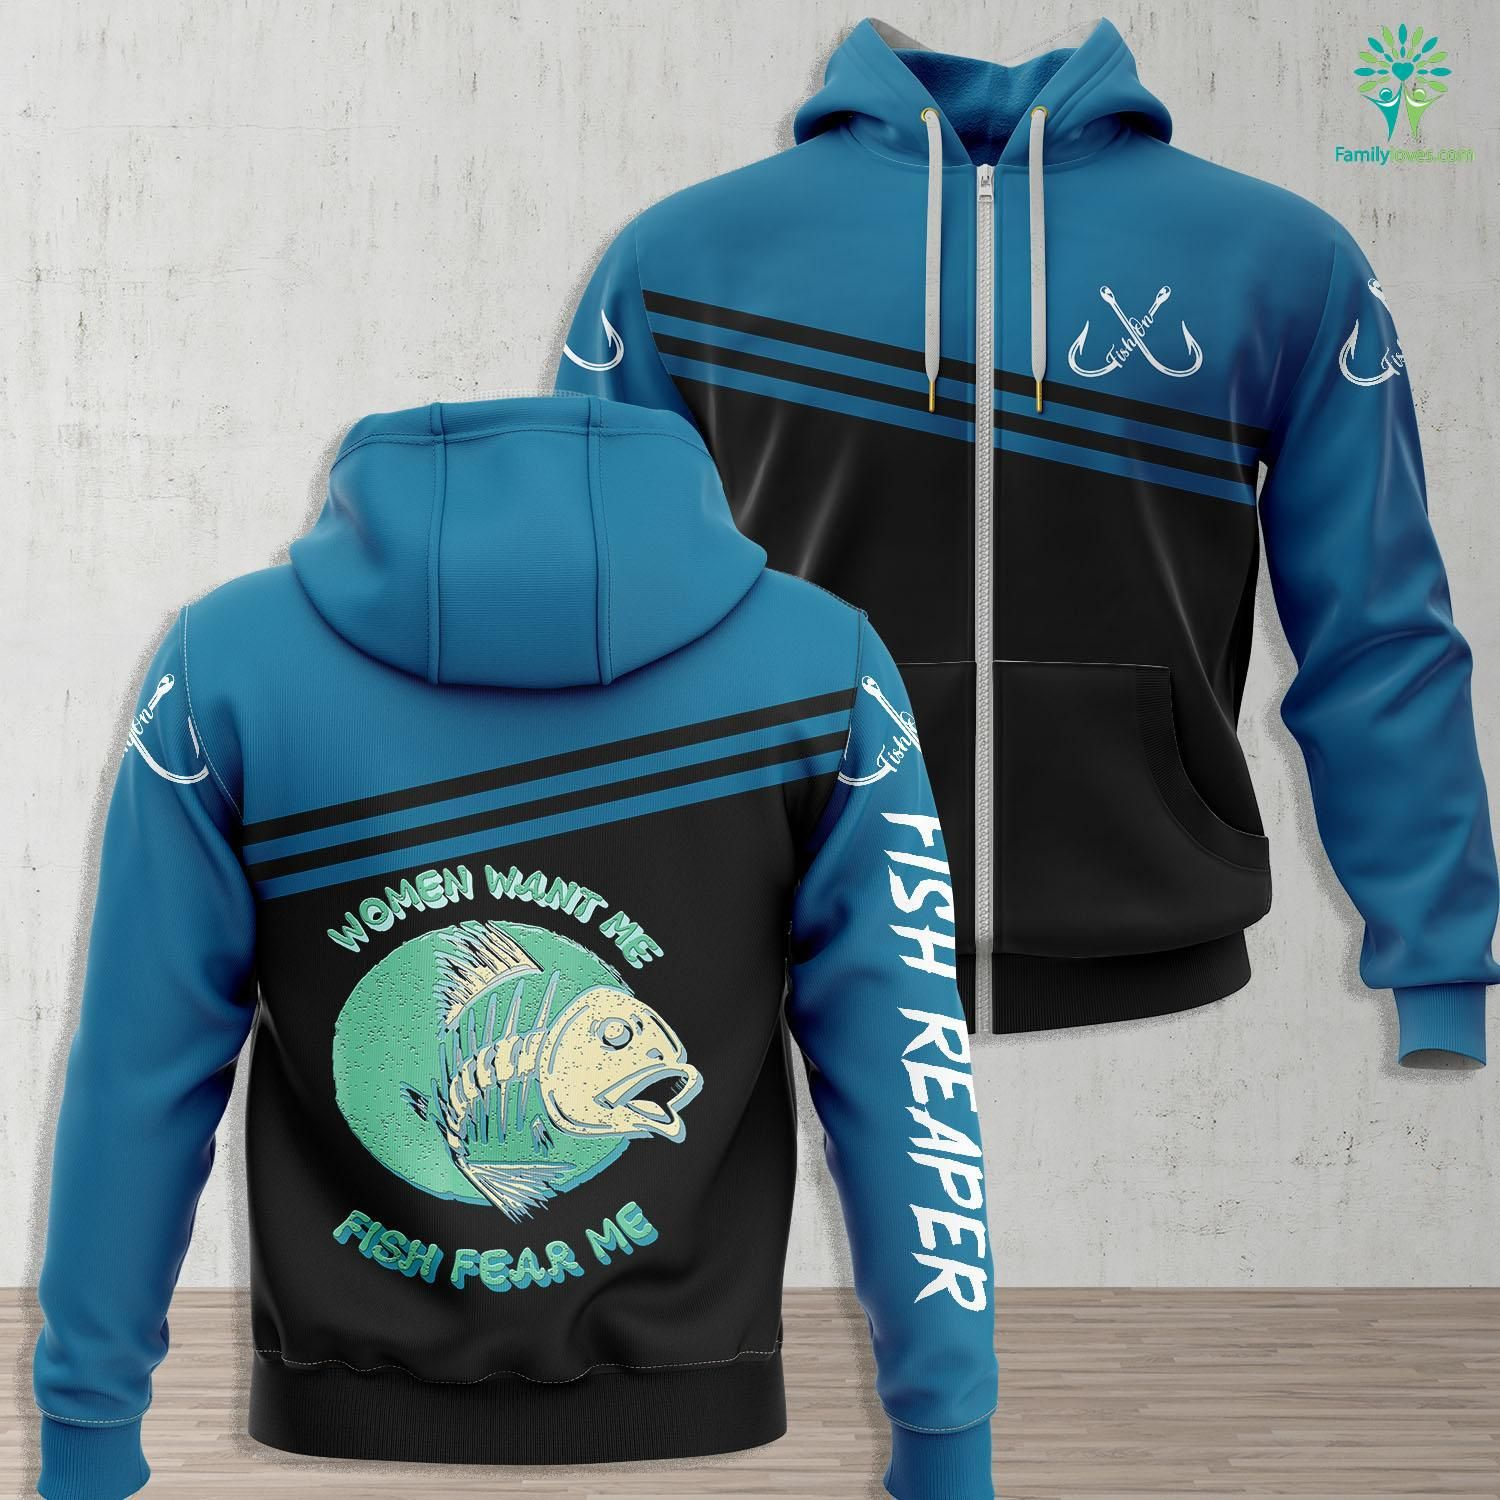 Galveston Fishing Report Women Want Me Fish Fear Me Funny Fisher Fishing Sports Tee Fishing Zip up Hoo All Over Print Familyloves